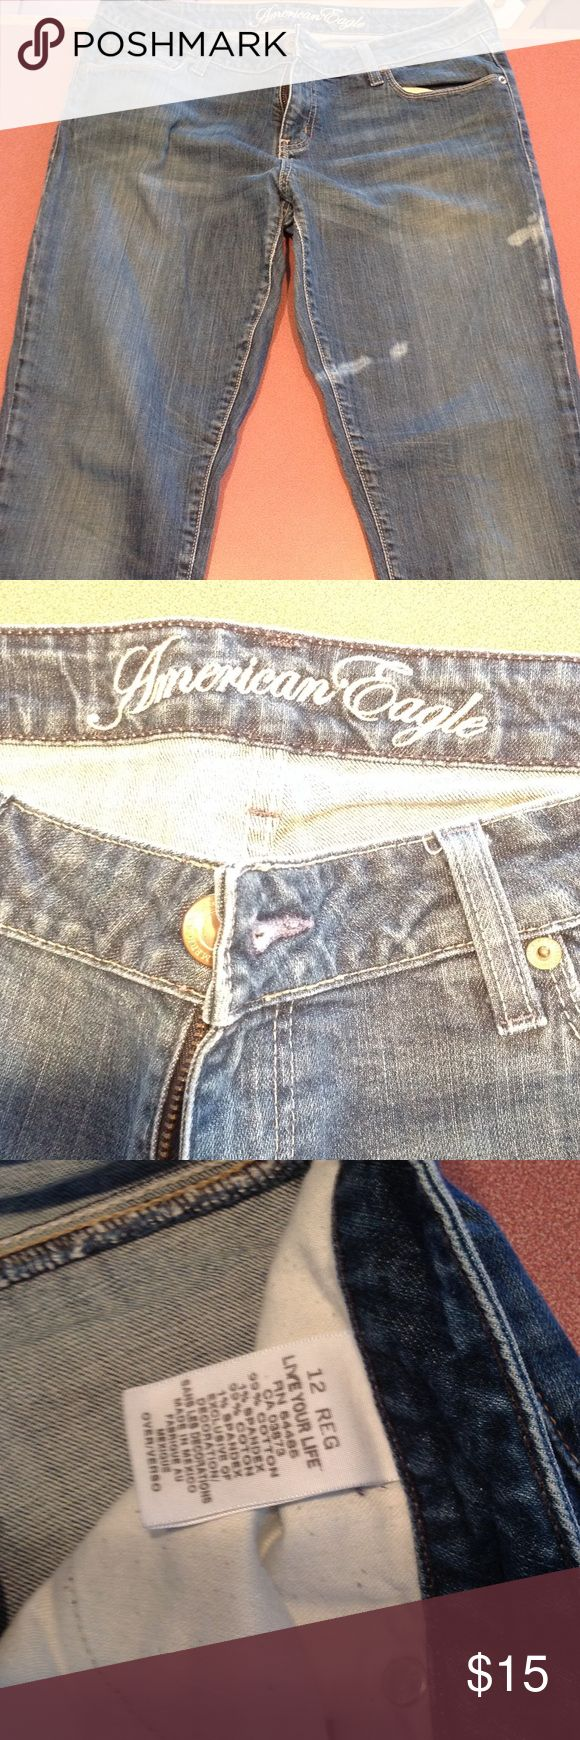 American Eagle Live your life jeans These are in great condition! Have the distressed spots, just as they came. American Eagle Outfitters Pants Skinny